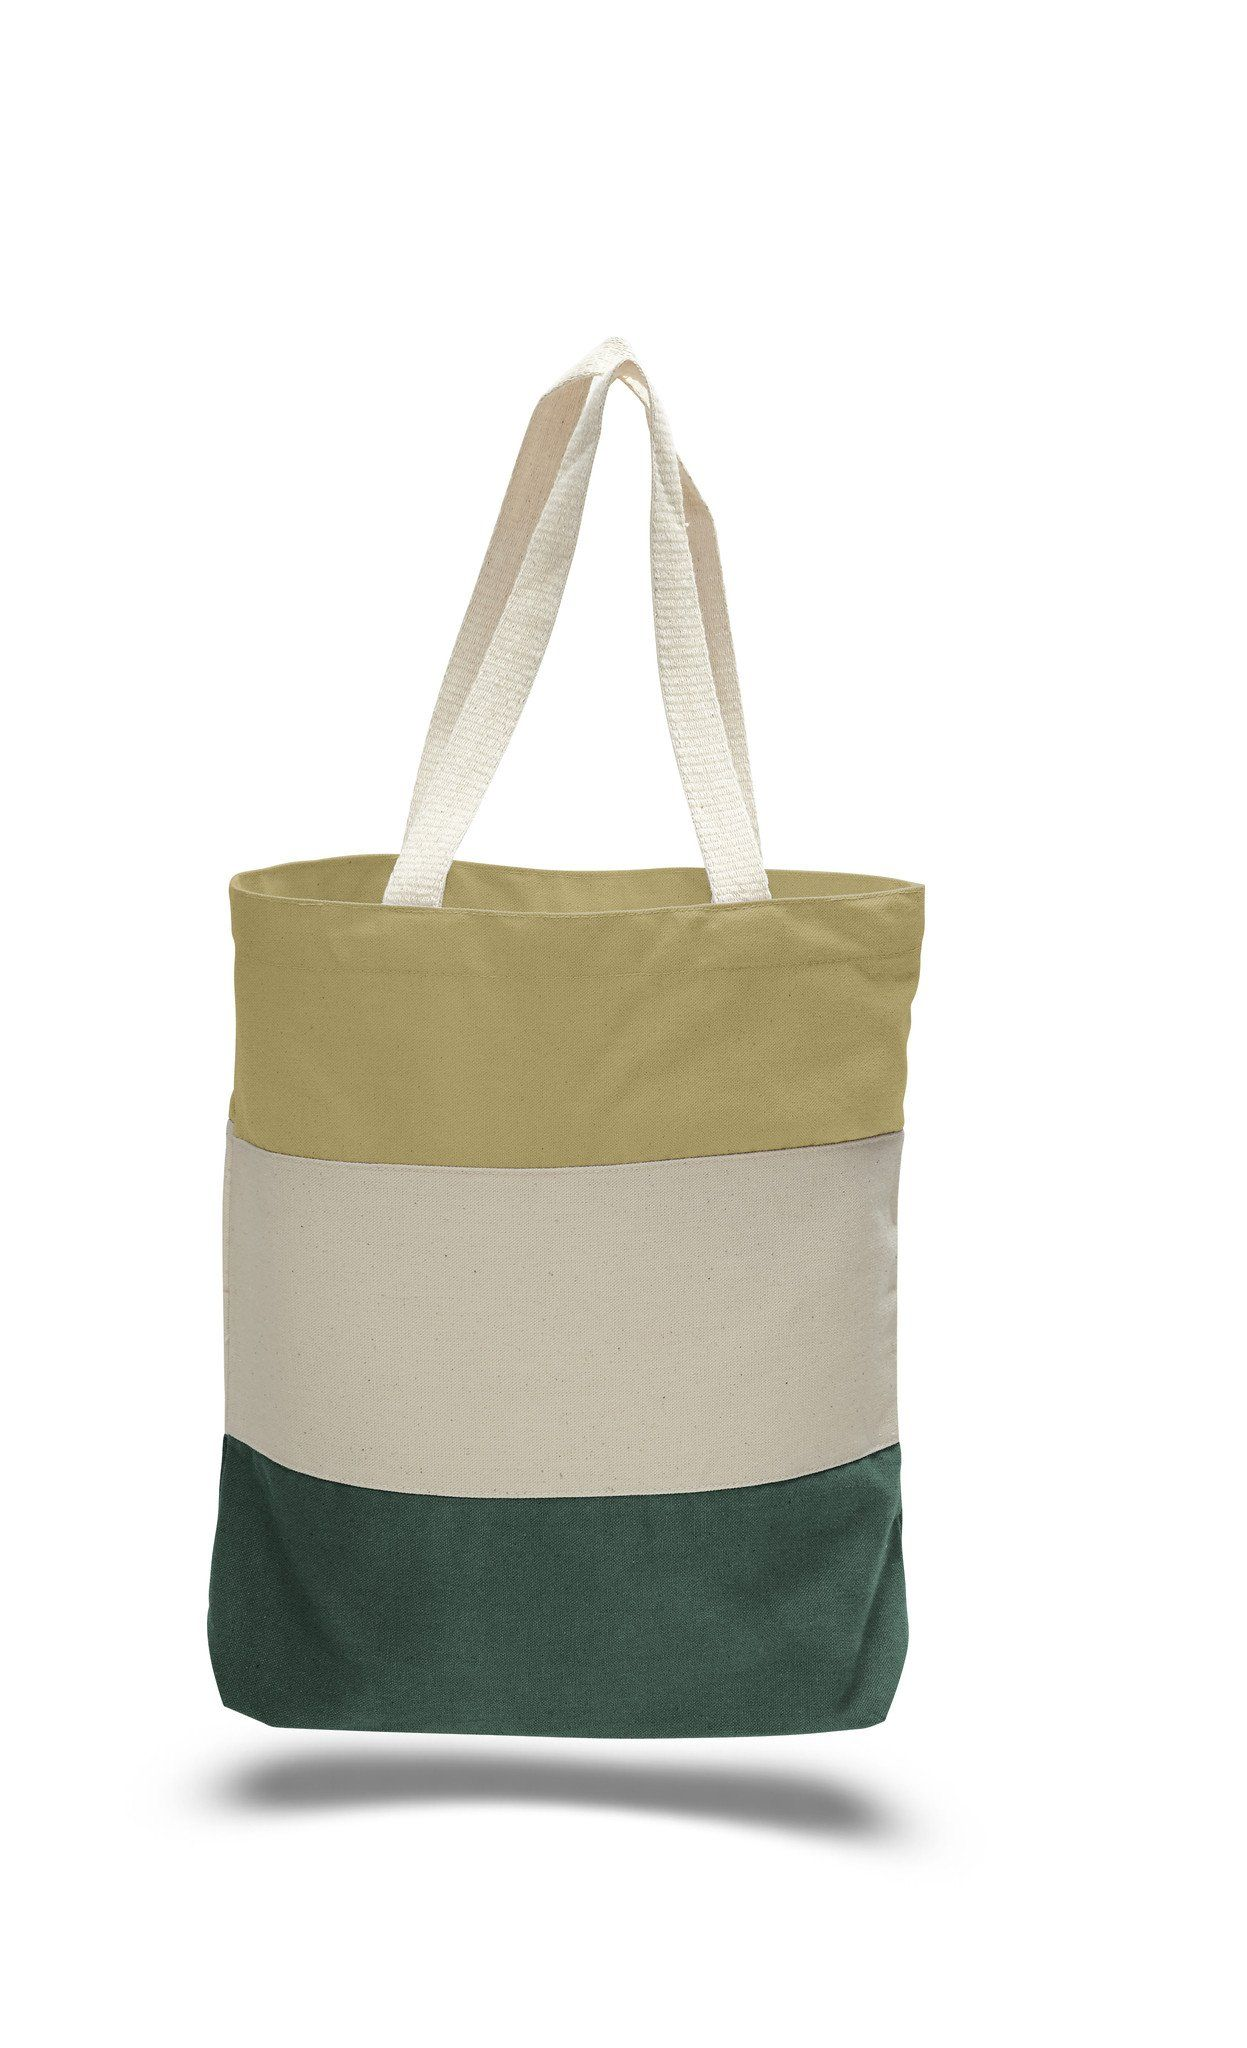 b74f1b9a5ef5 Heavy Canvas Tri-Color Fancy Canvas Tote Bags - TG259 Cheap Totes